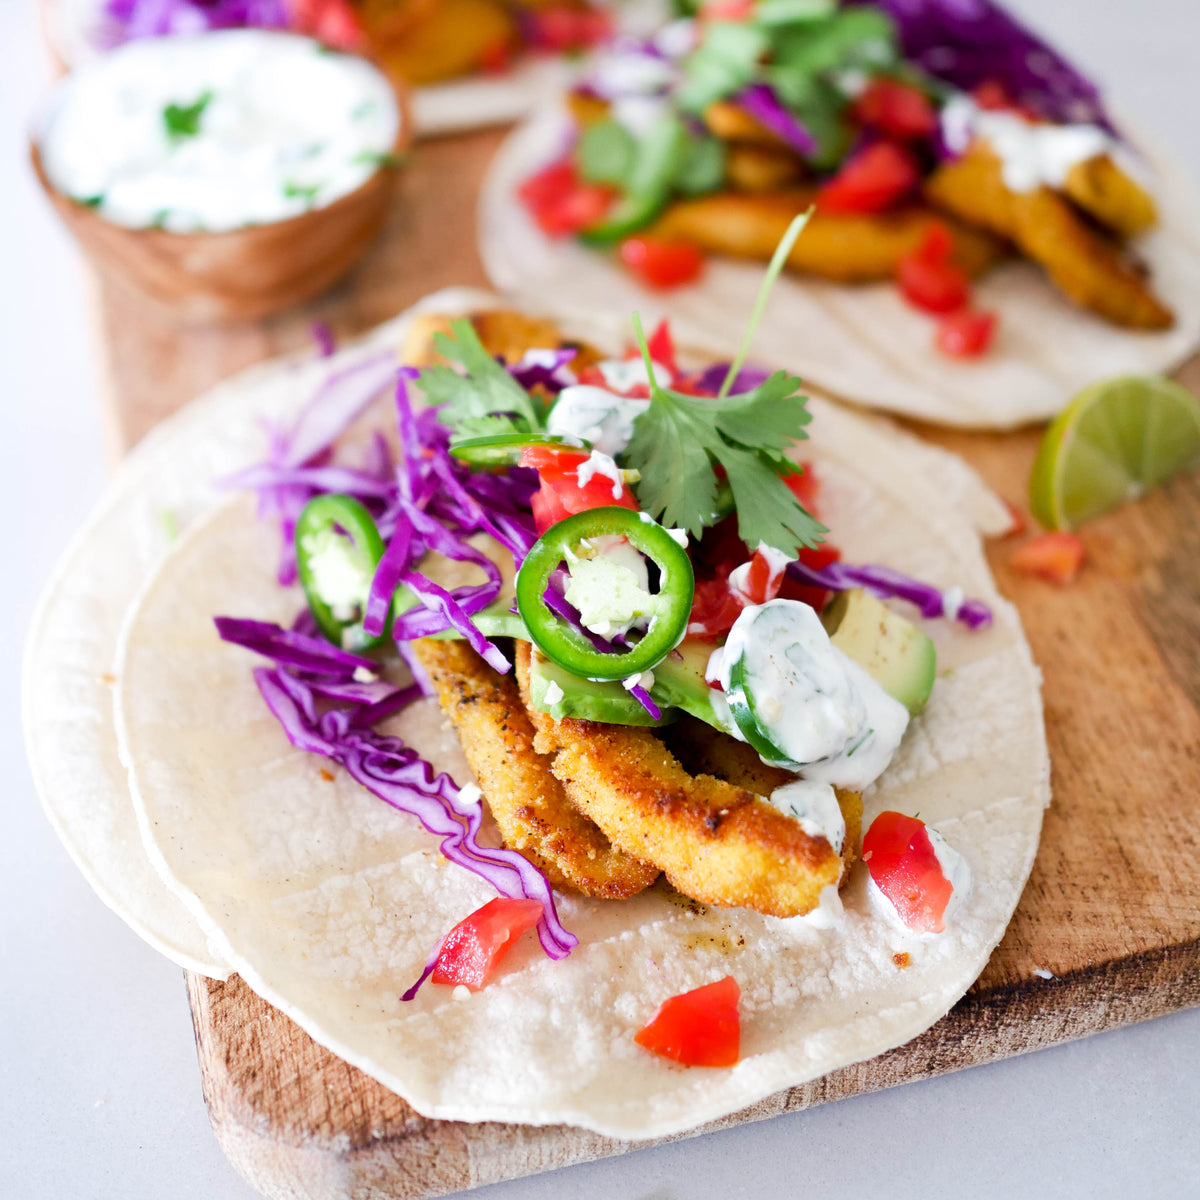 Fish Tacos With Corn Tortillas Leah Itsines